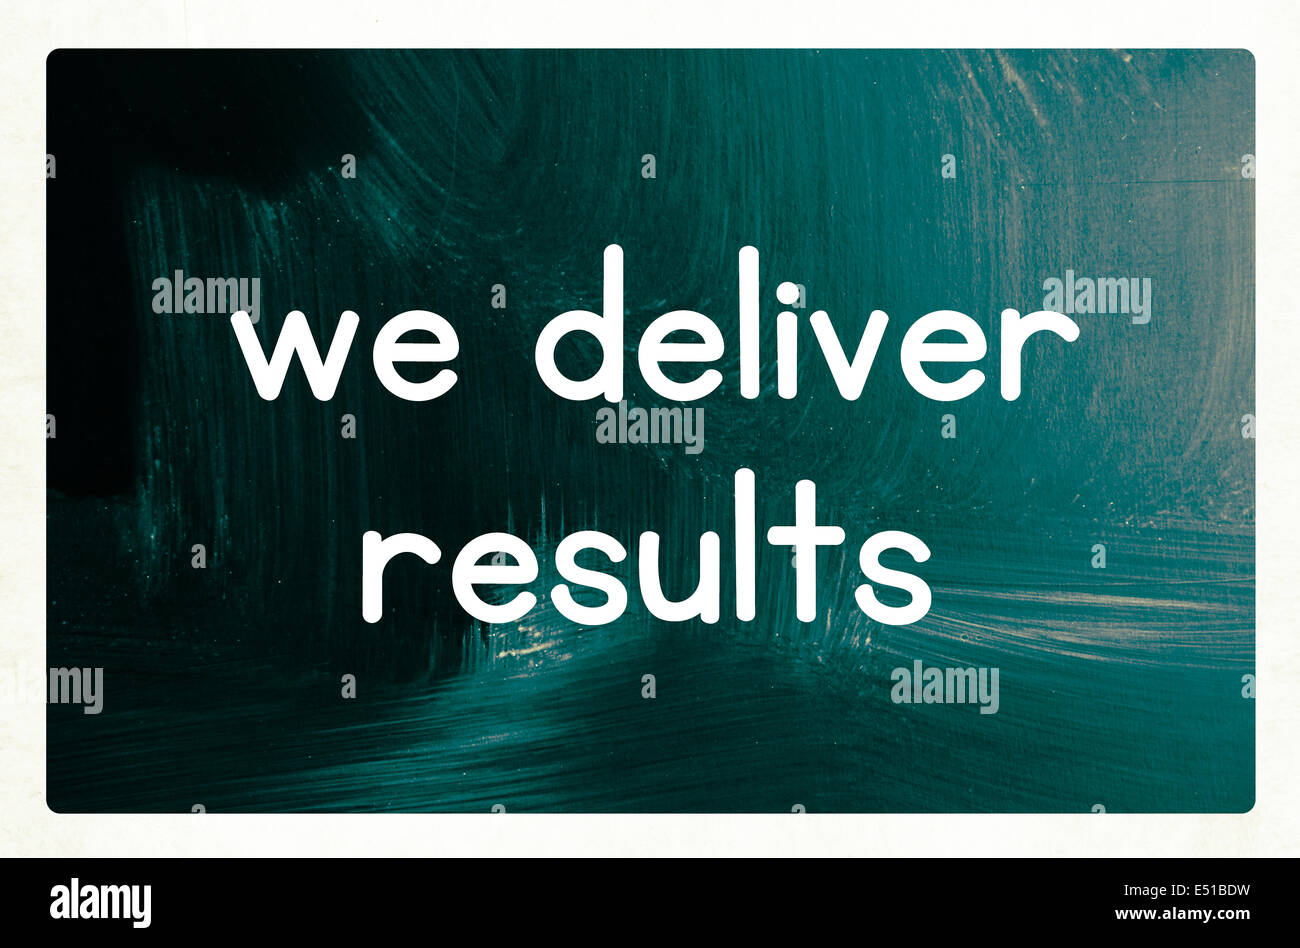 we deliver results concept - Stock Image